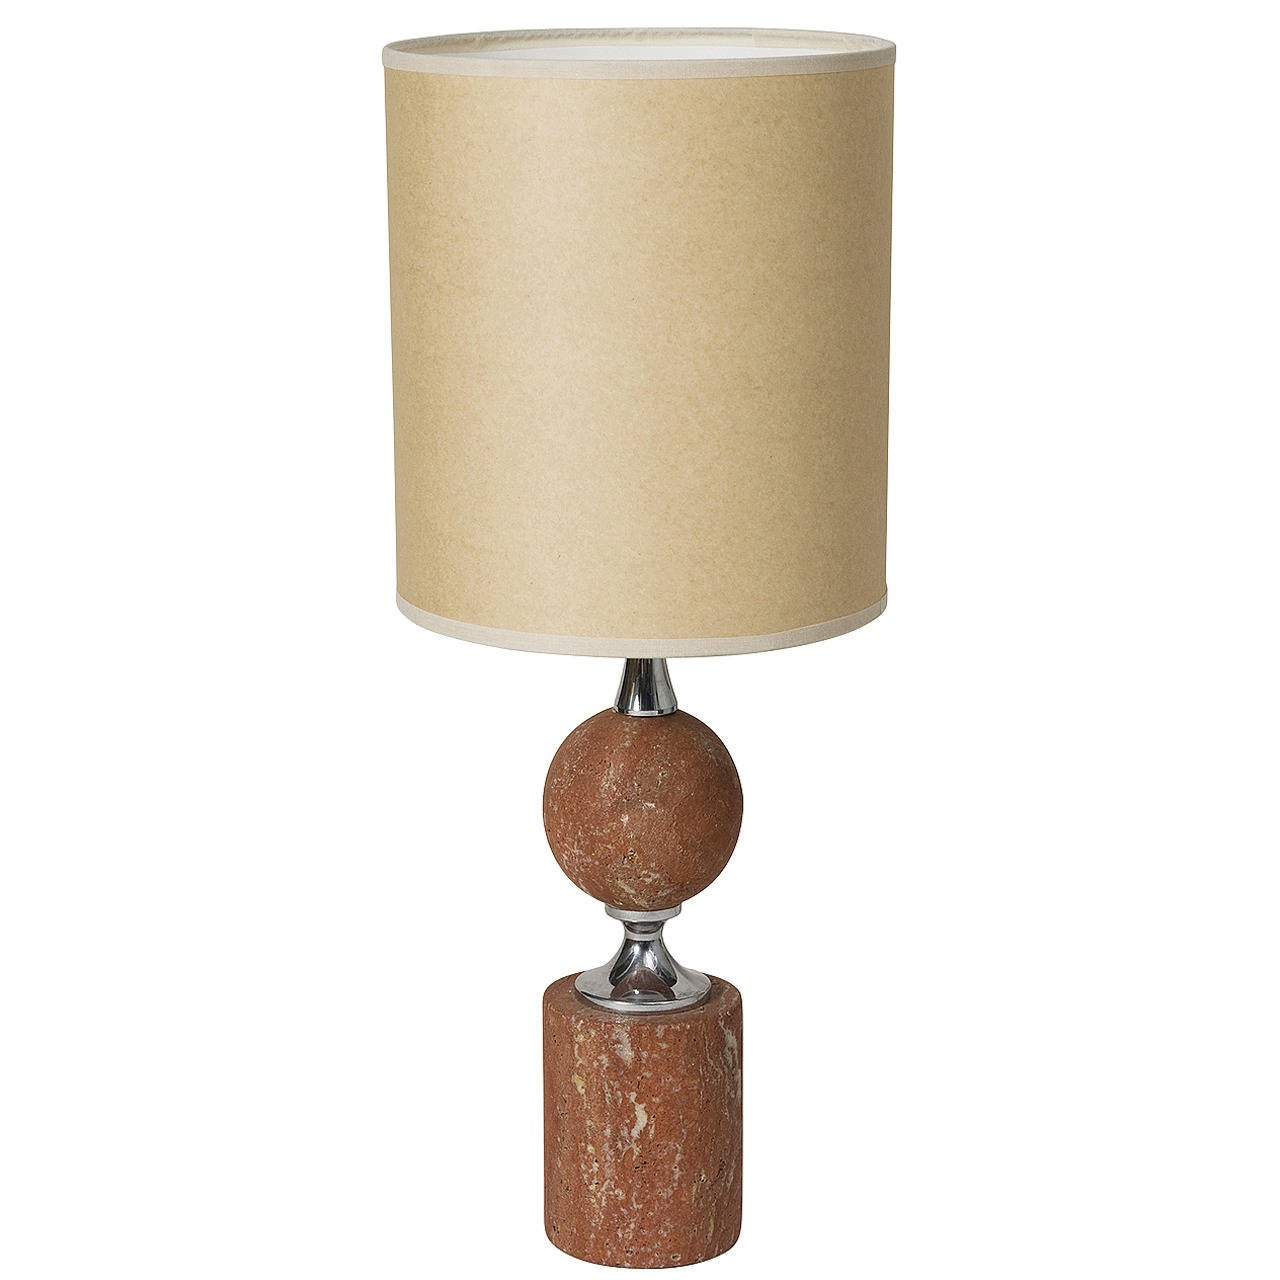 Rouge Travertine Table Lamp By Barbier At 1stdibs